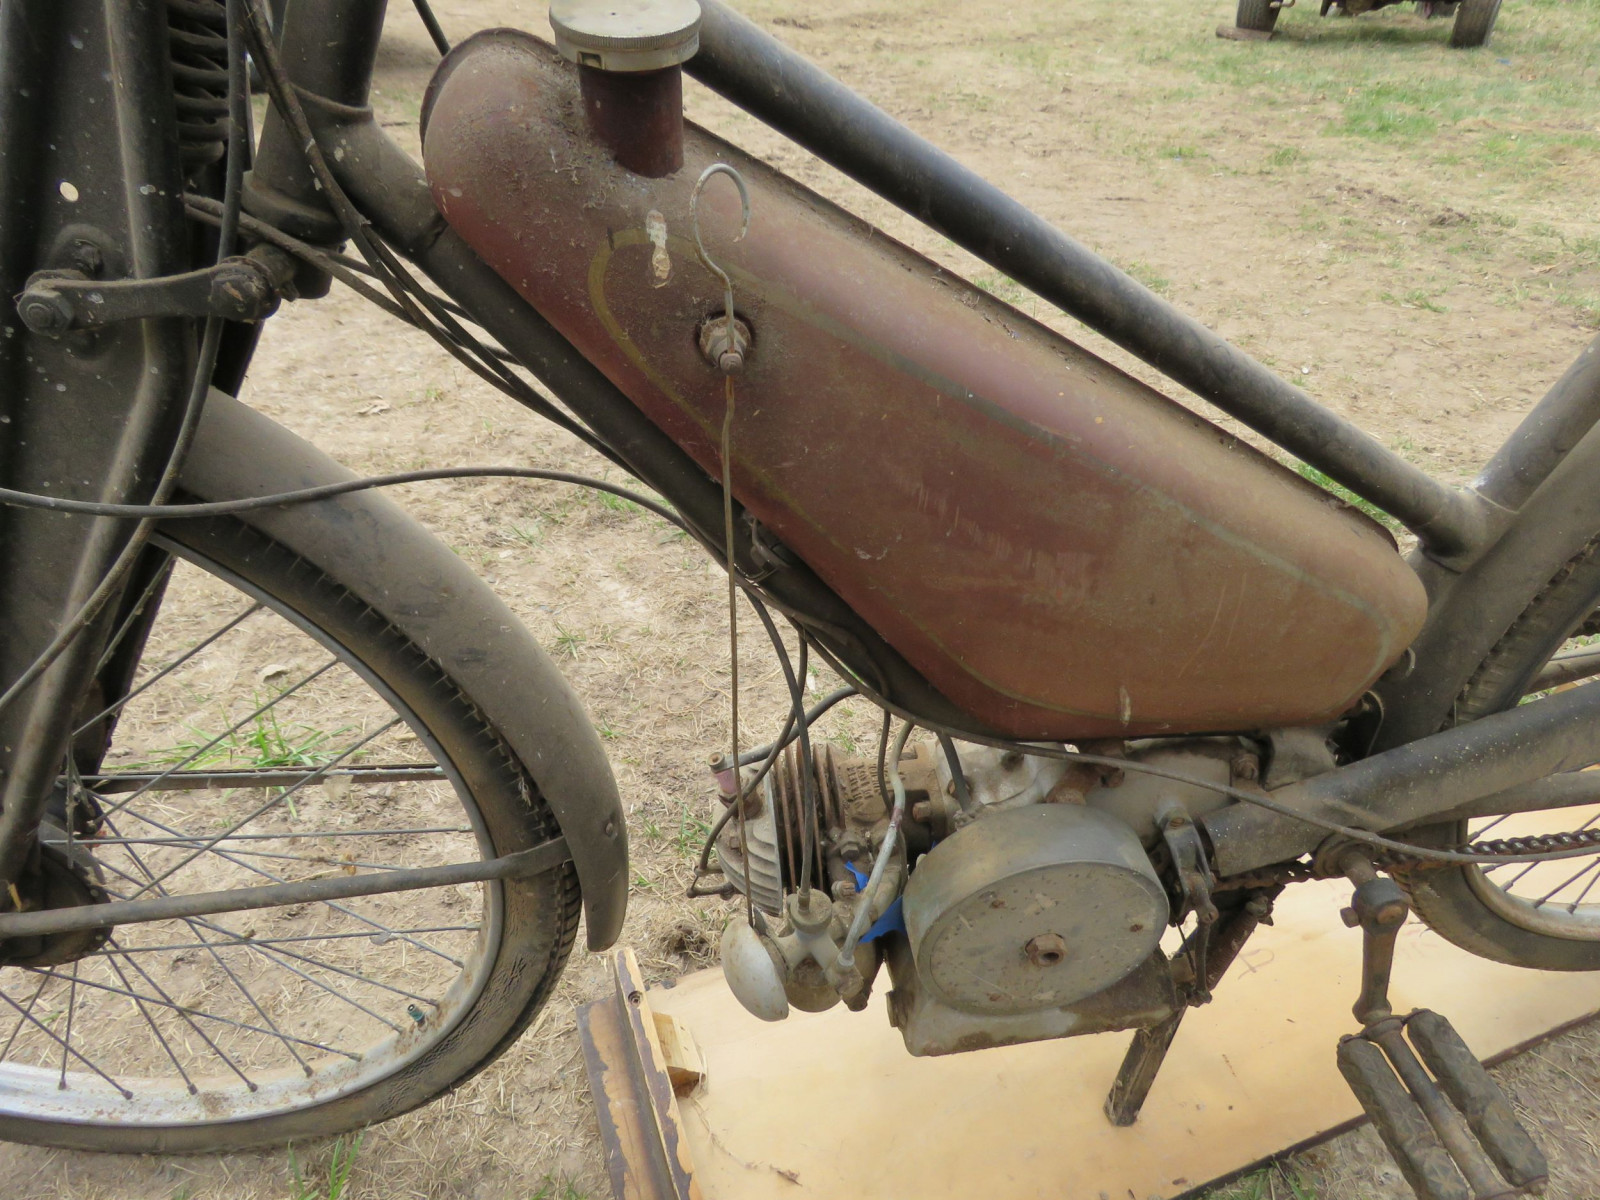 Rare Villiers Junior Motorcycle - Image 4